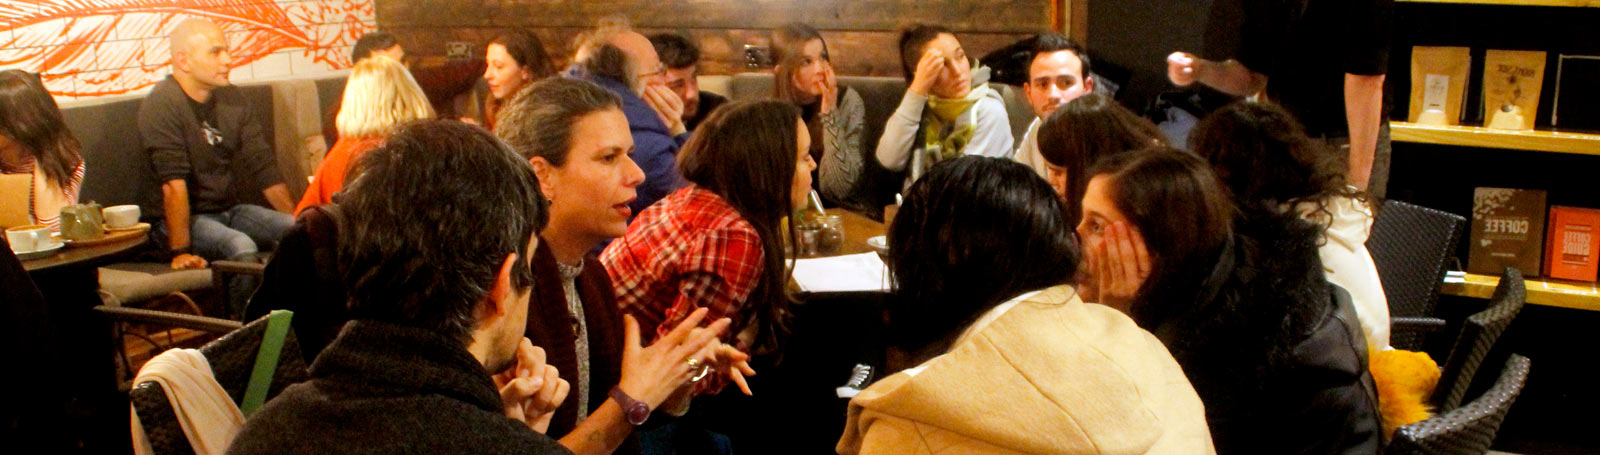 Social language conversation classes in bars and cafes of Liverpool, UK